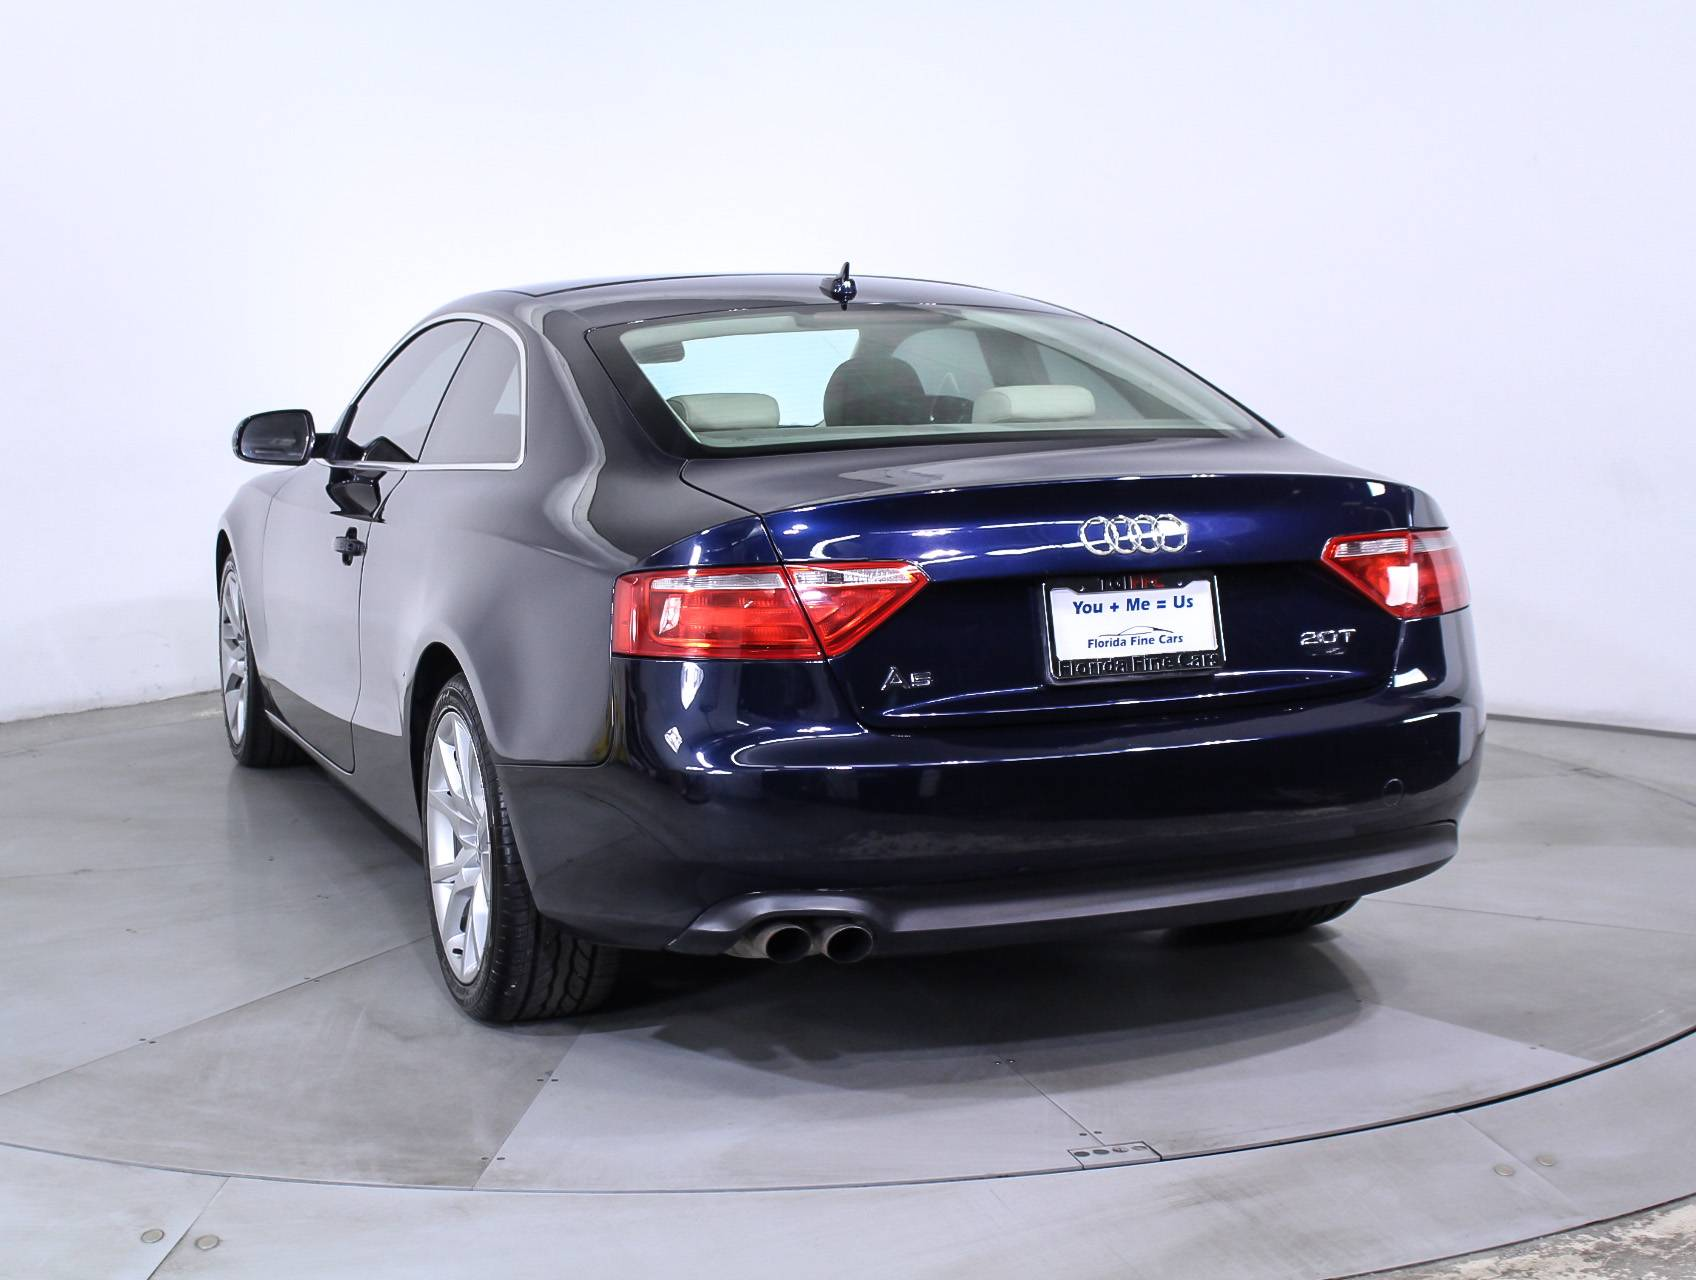 ultra pre colorado near edition pics image best tt dr marvelous popular xcode and prestige audi stock special tdi preowned owned black for concept